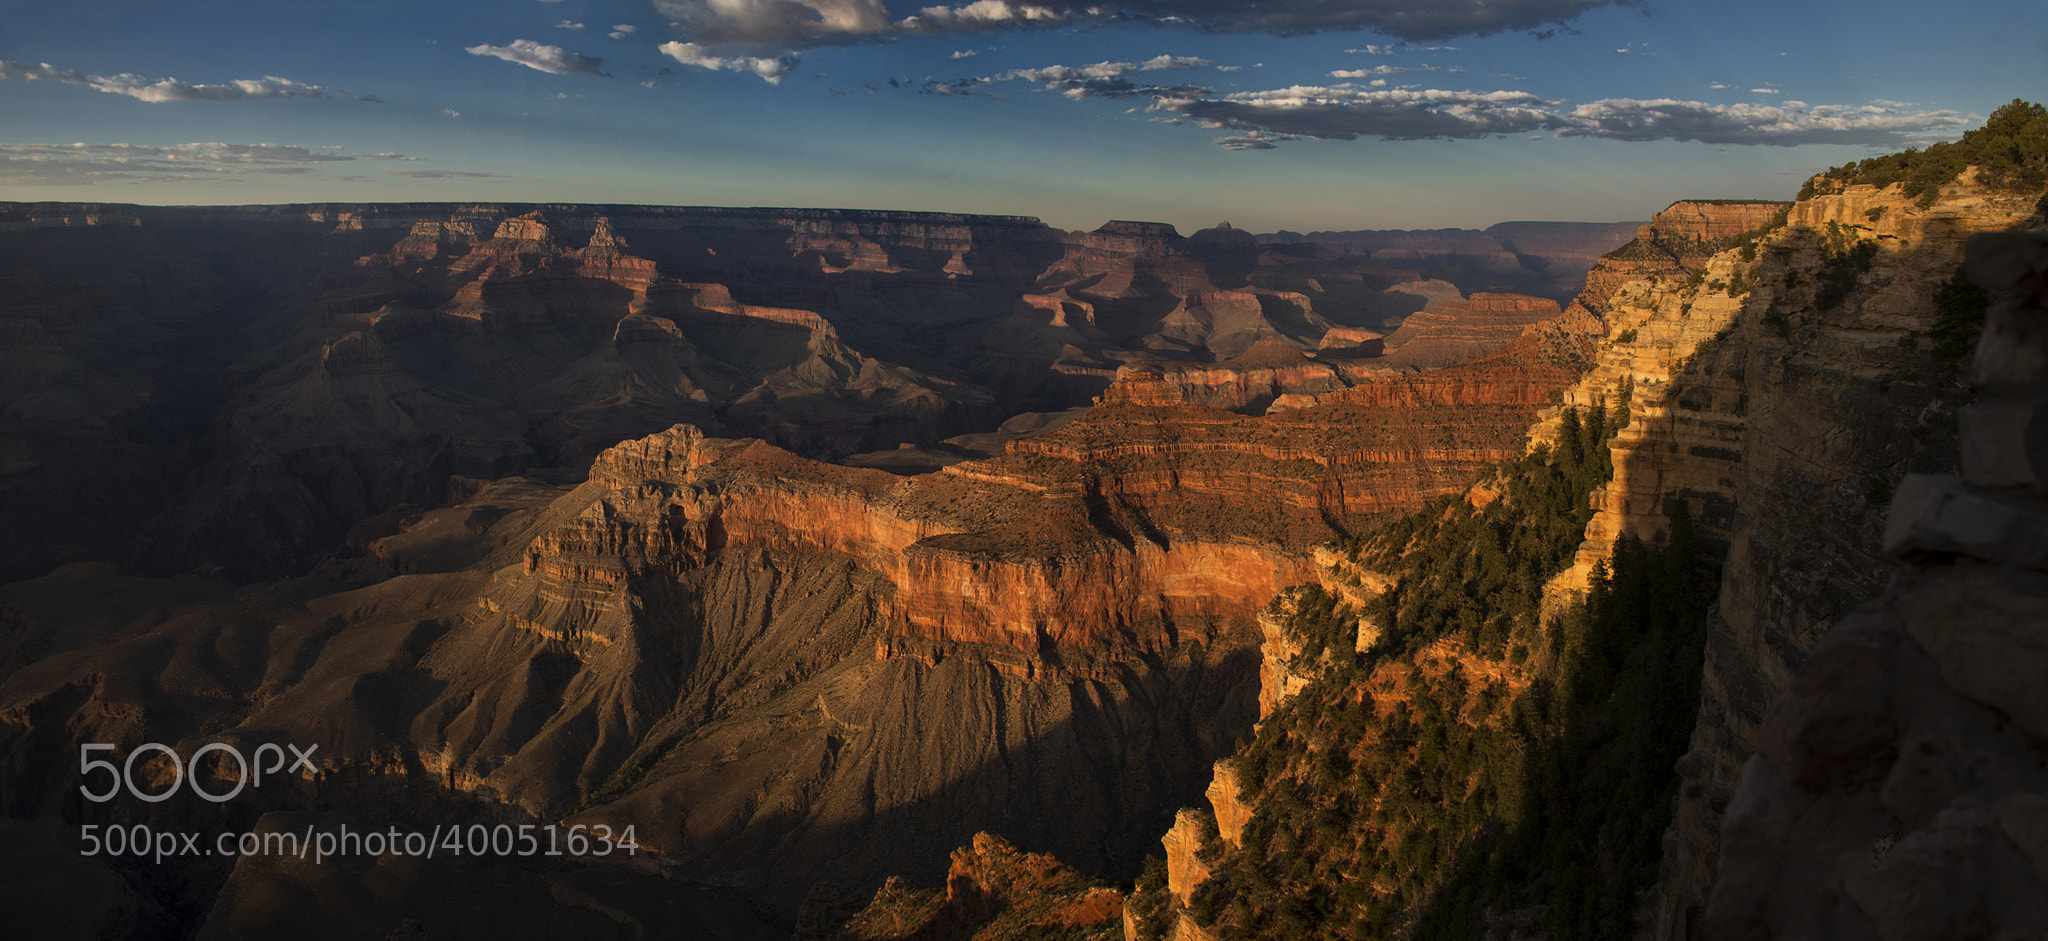 Photograph Golden Grand Canyon by NicholasL on 500px